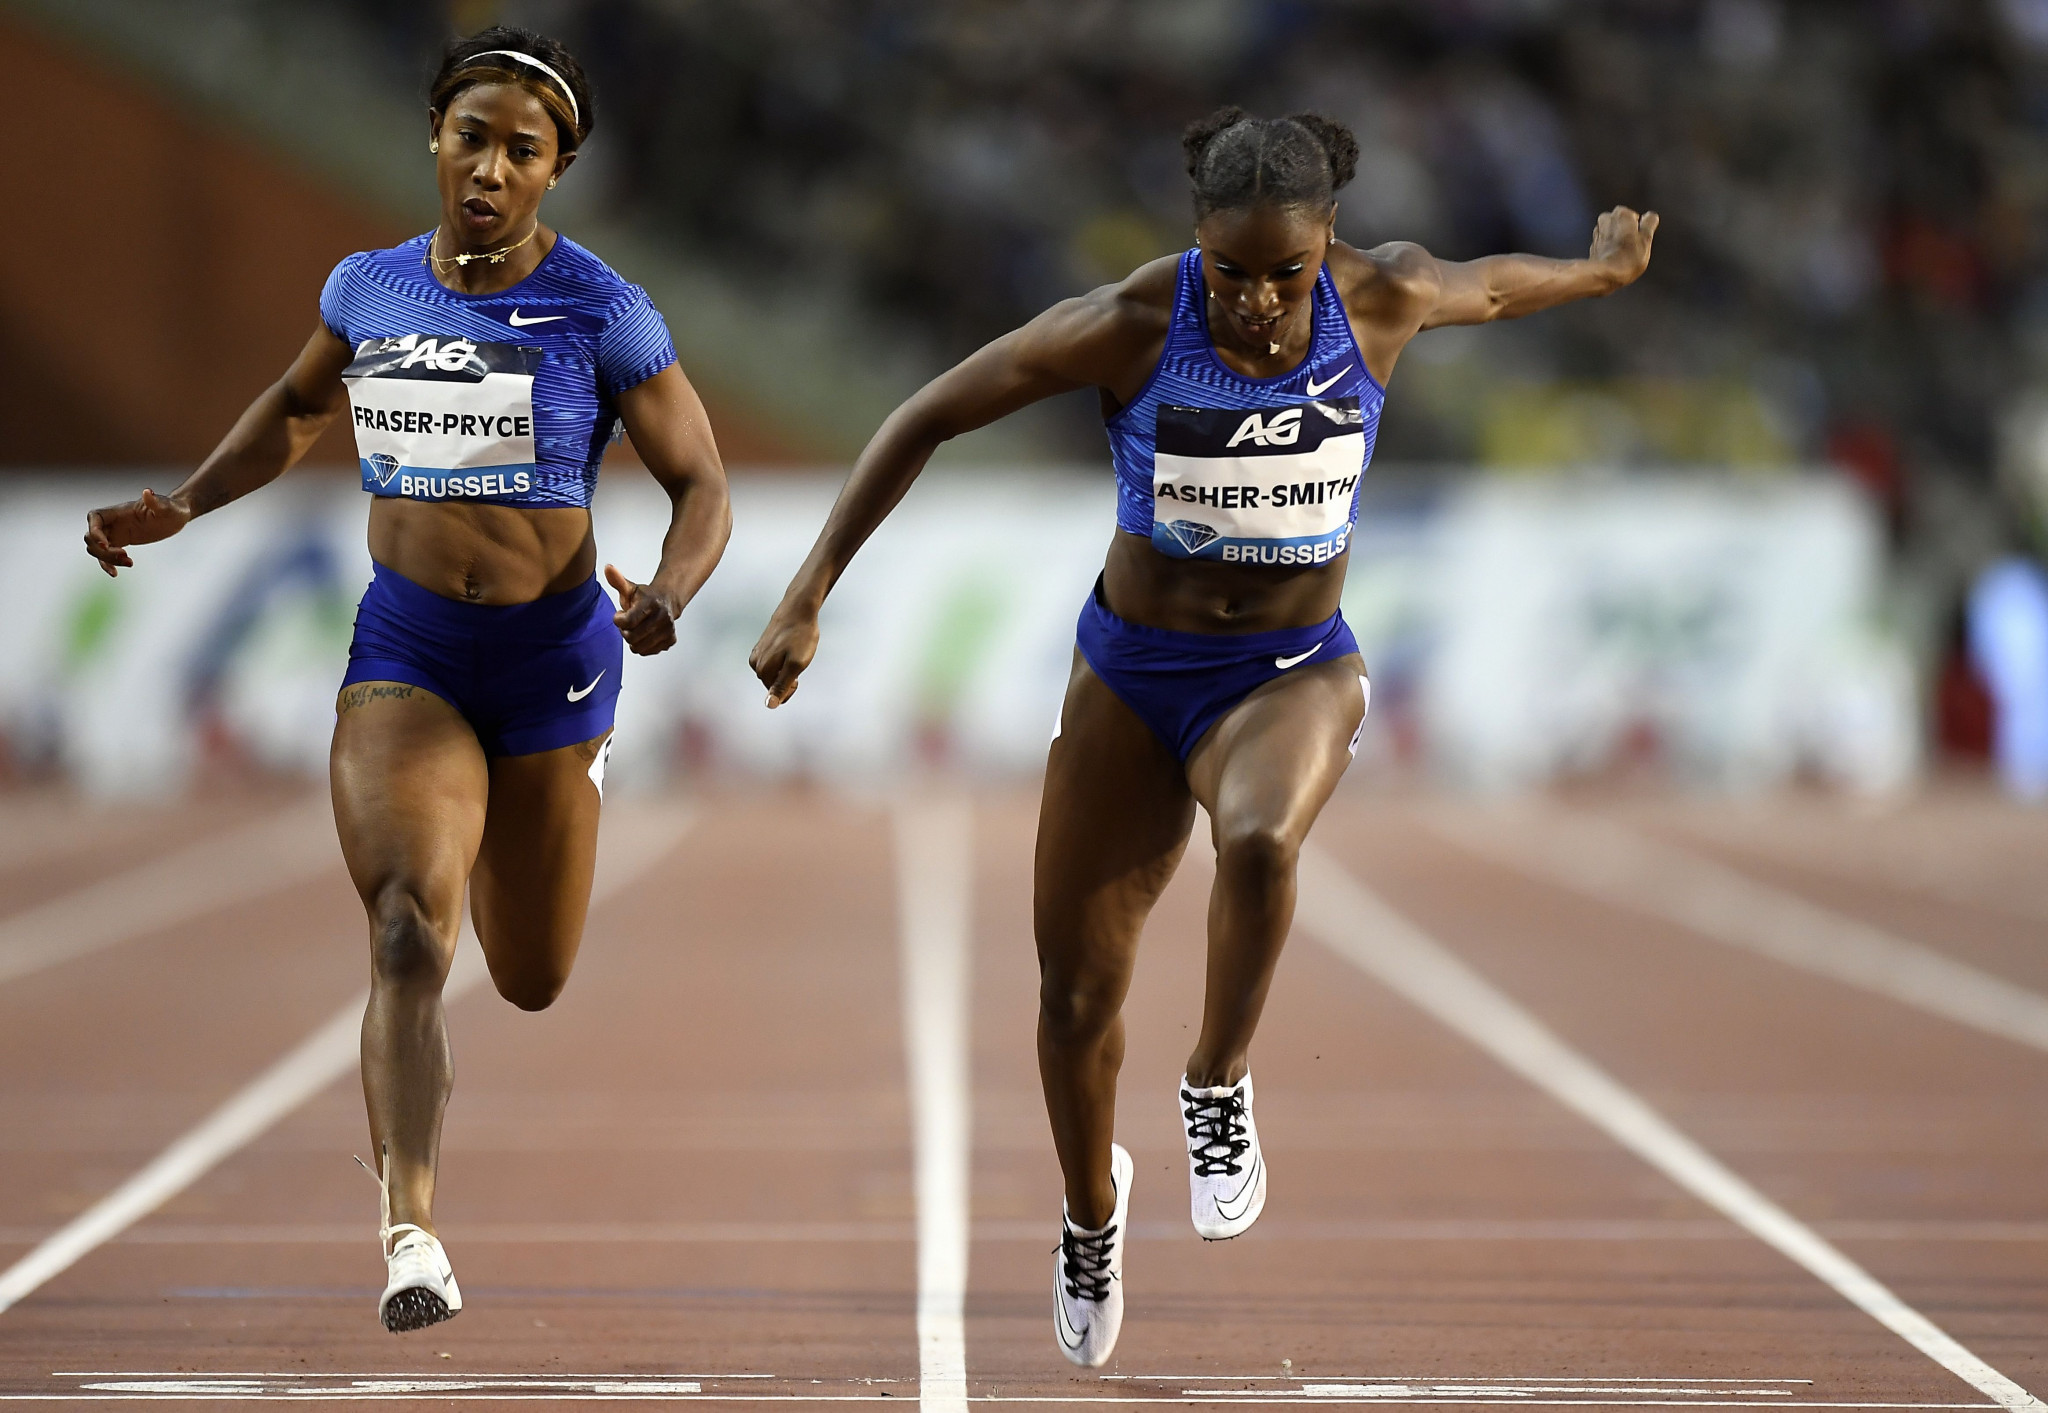 Asher-Smith wins 100m IAAF Diamond League title in Brussels as Taylor equals Lavillenie's record